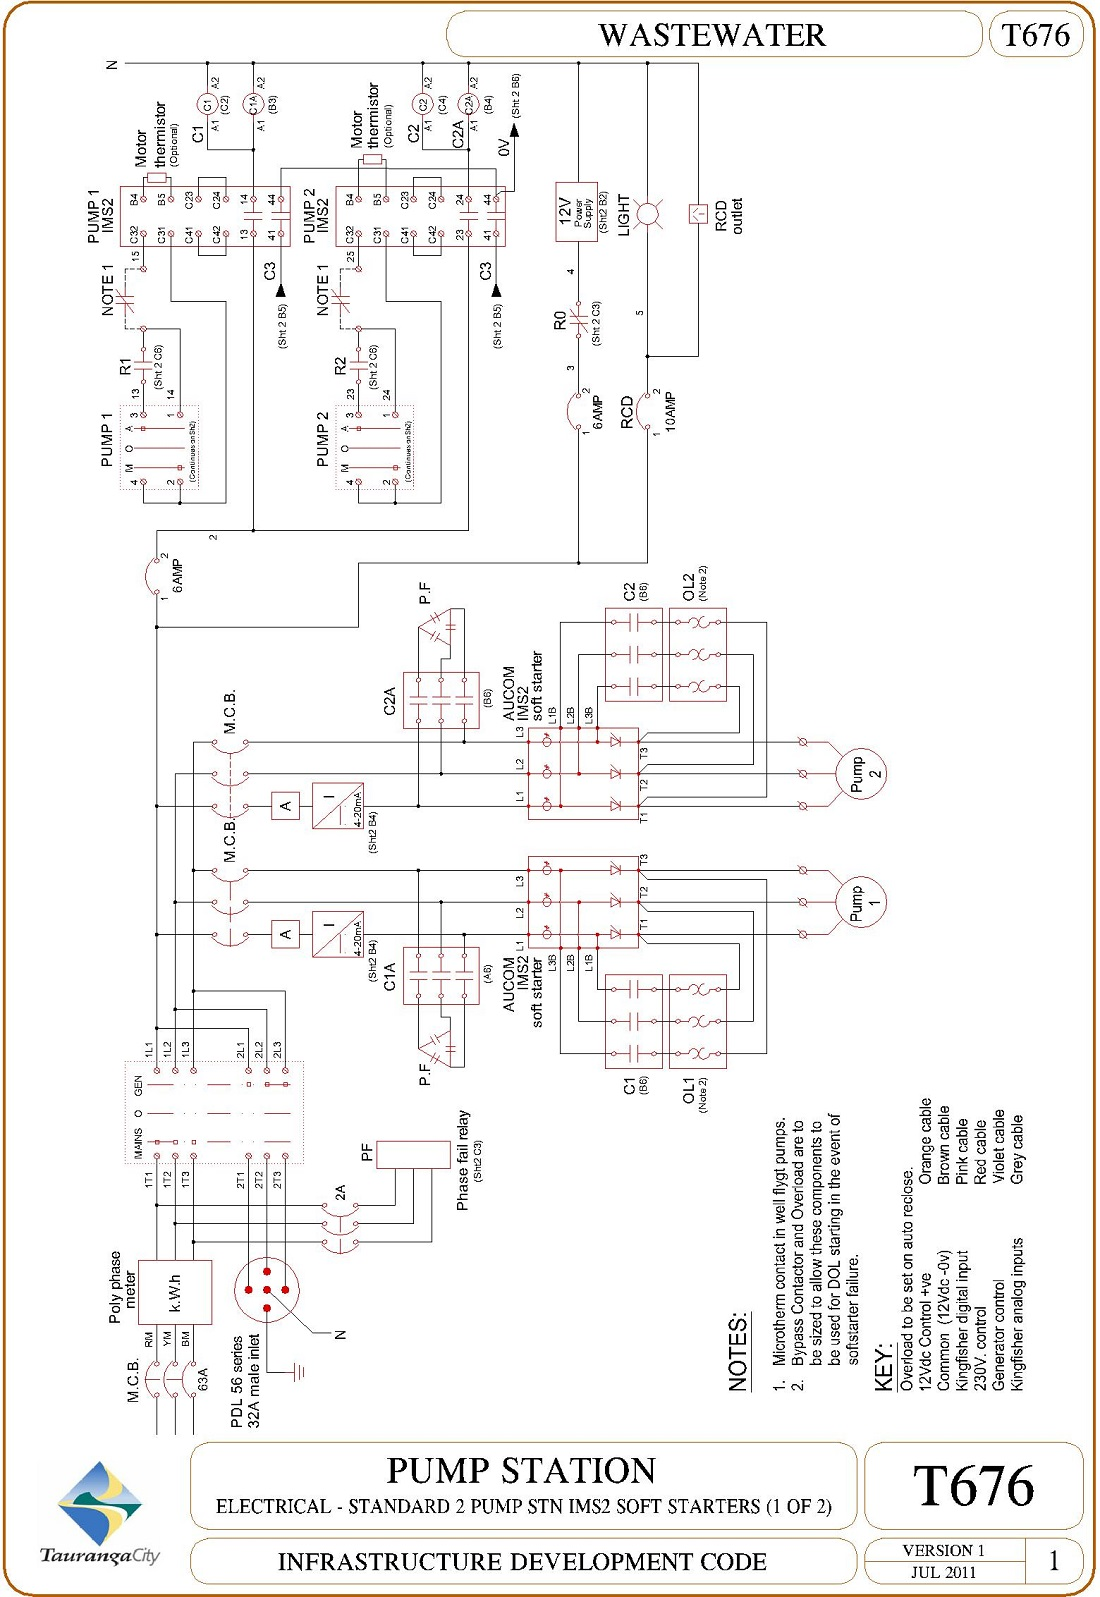 Pump Station - Electrical - Standard 2 Pump Stn IMS2 Soft Starters (1 of 2)